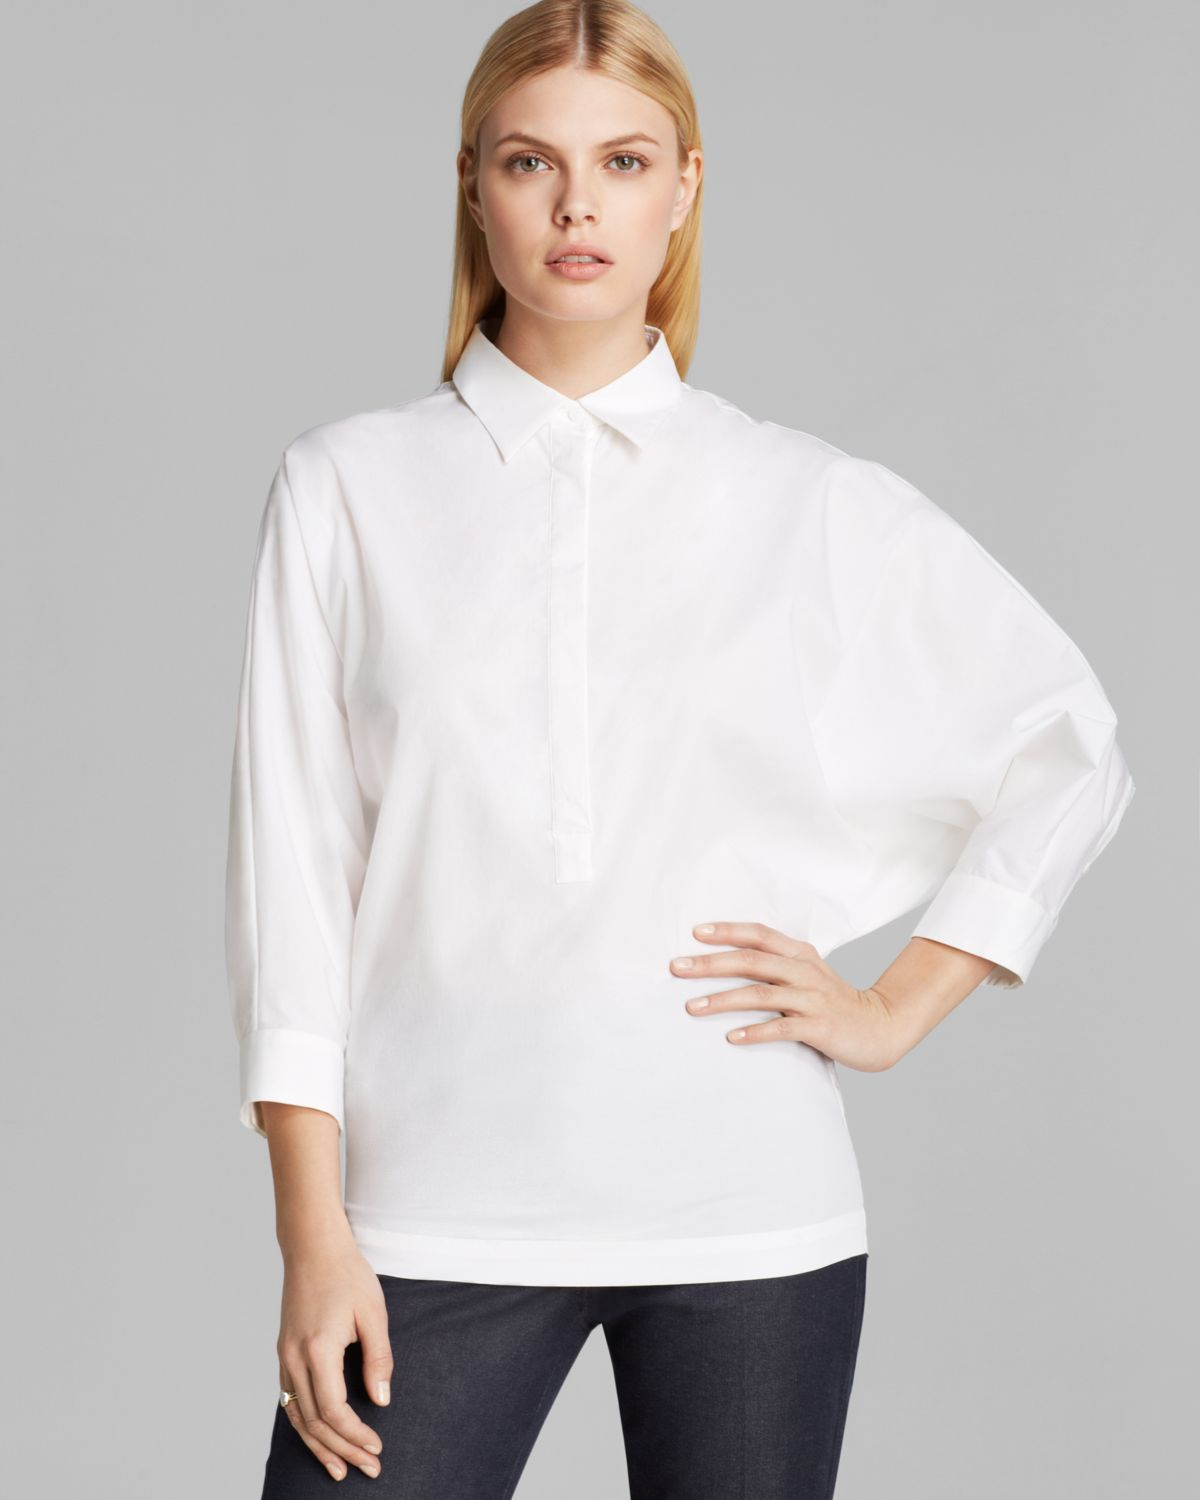 Cover your body with amazing Kimono t-shirts from Zazzle. Search for your new favorite shirt from thousands of great designs!